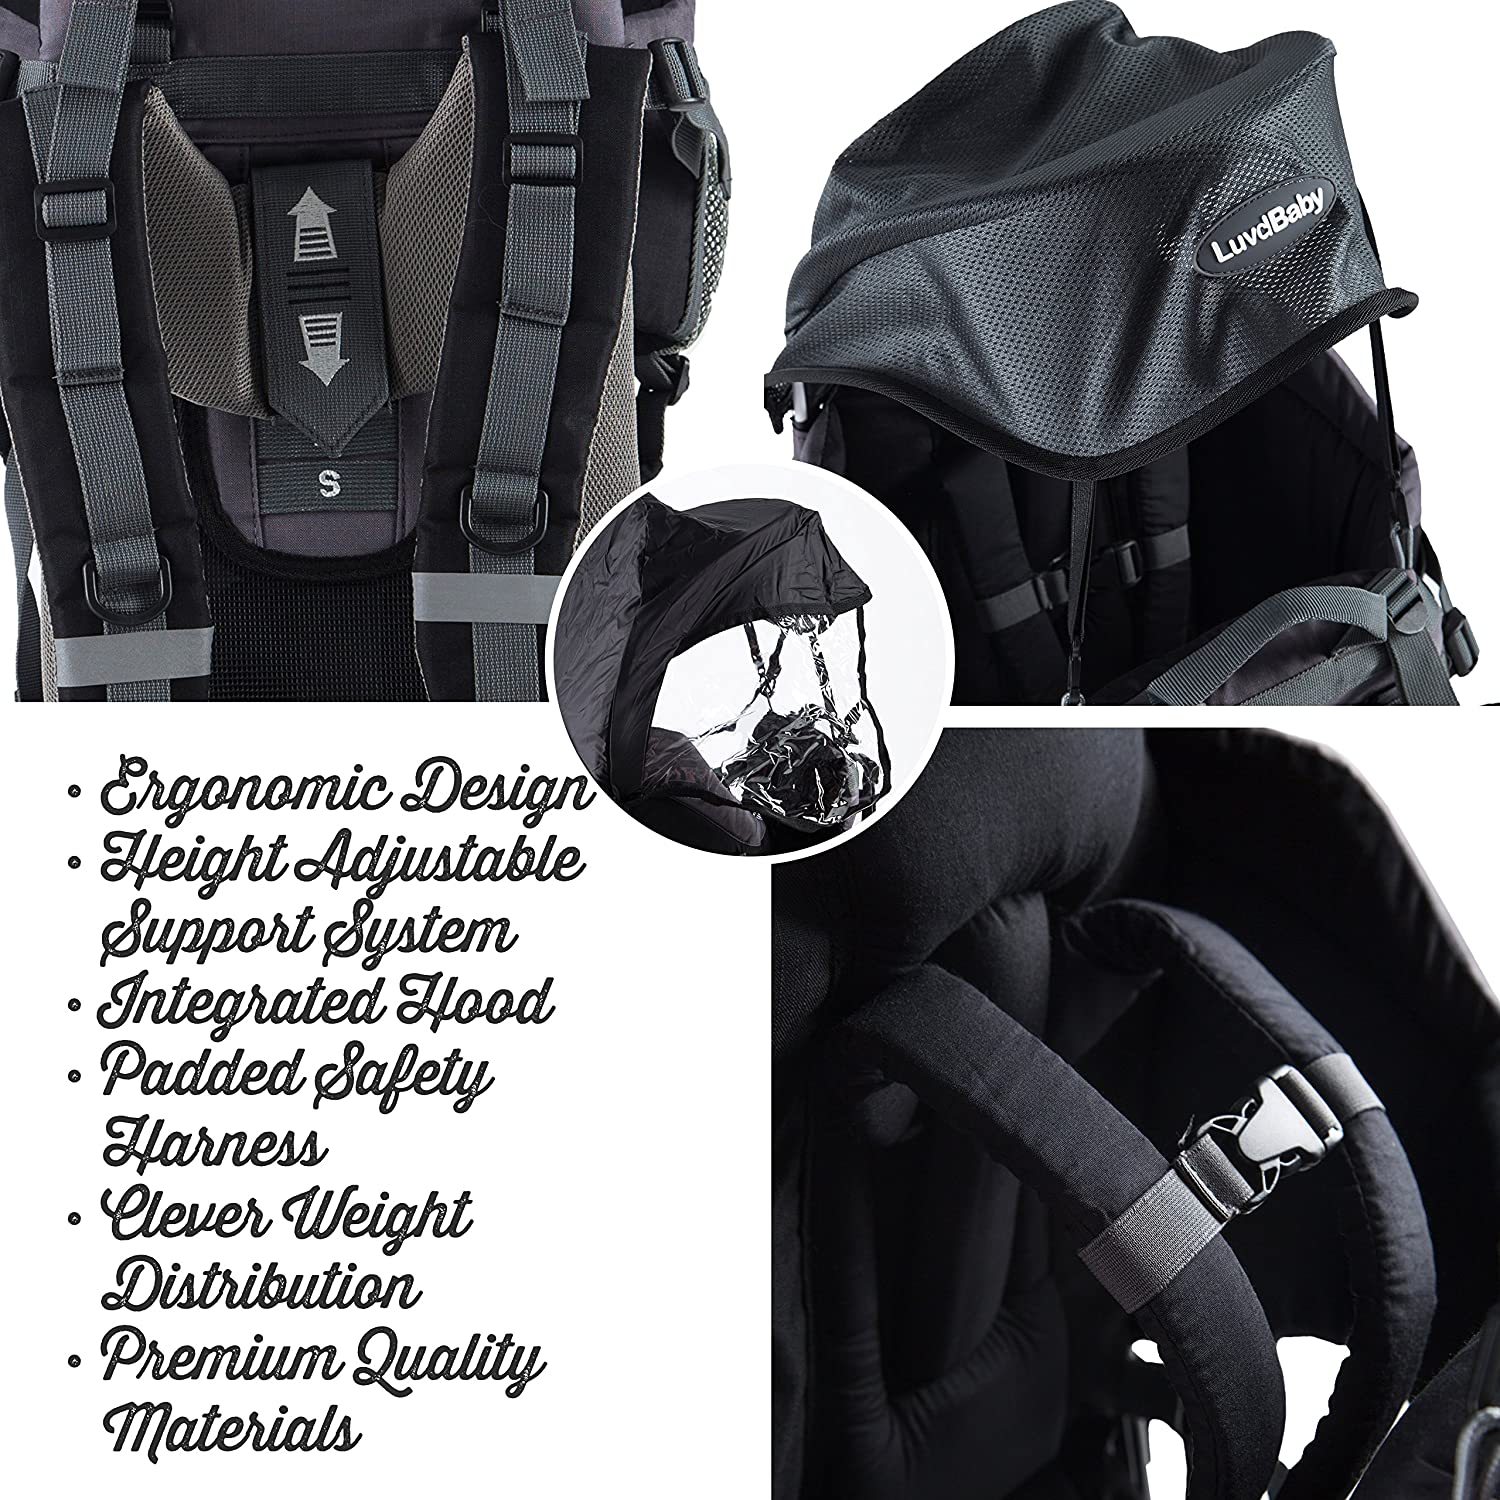 057a820469d Amazon.com  Luvdbaby Premium Baby Backpack Carrier for Hiking with Kids –  Carry Your Child Ergonomically (Black Grey)  Sports   Outdoors